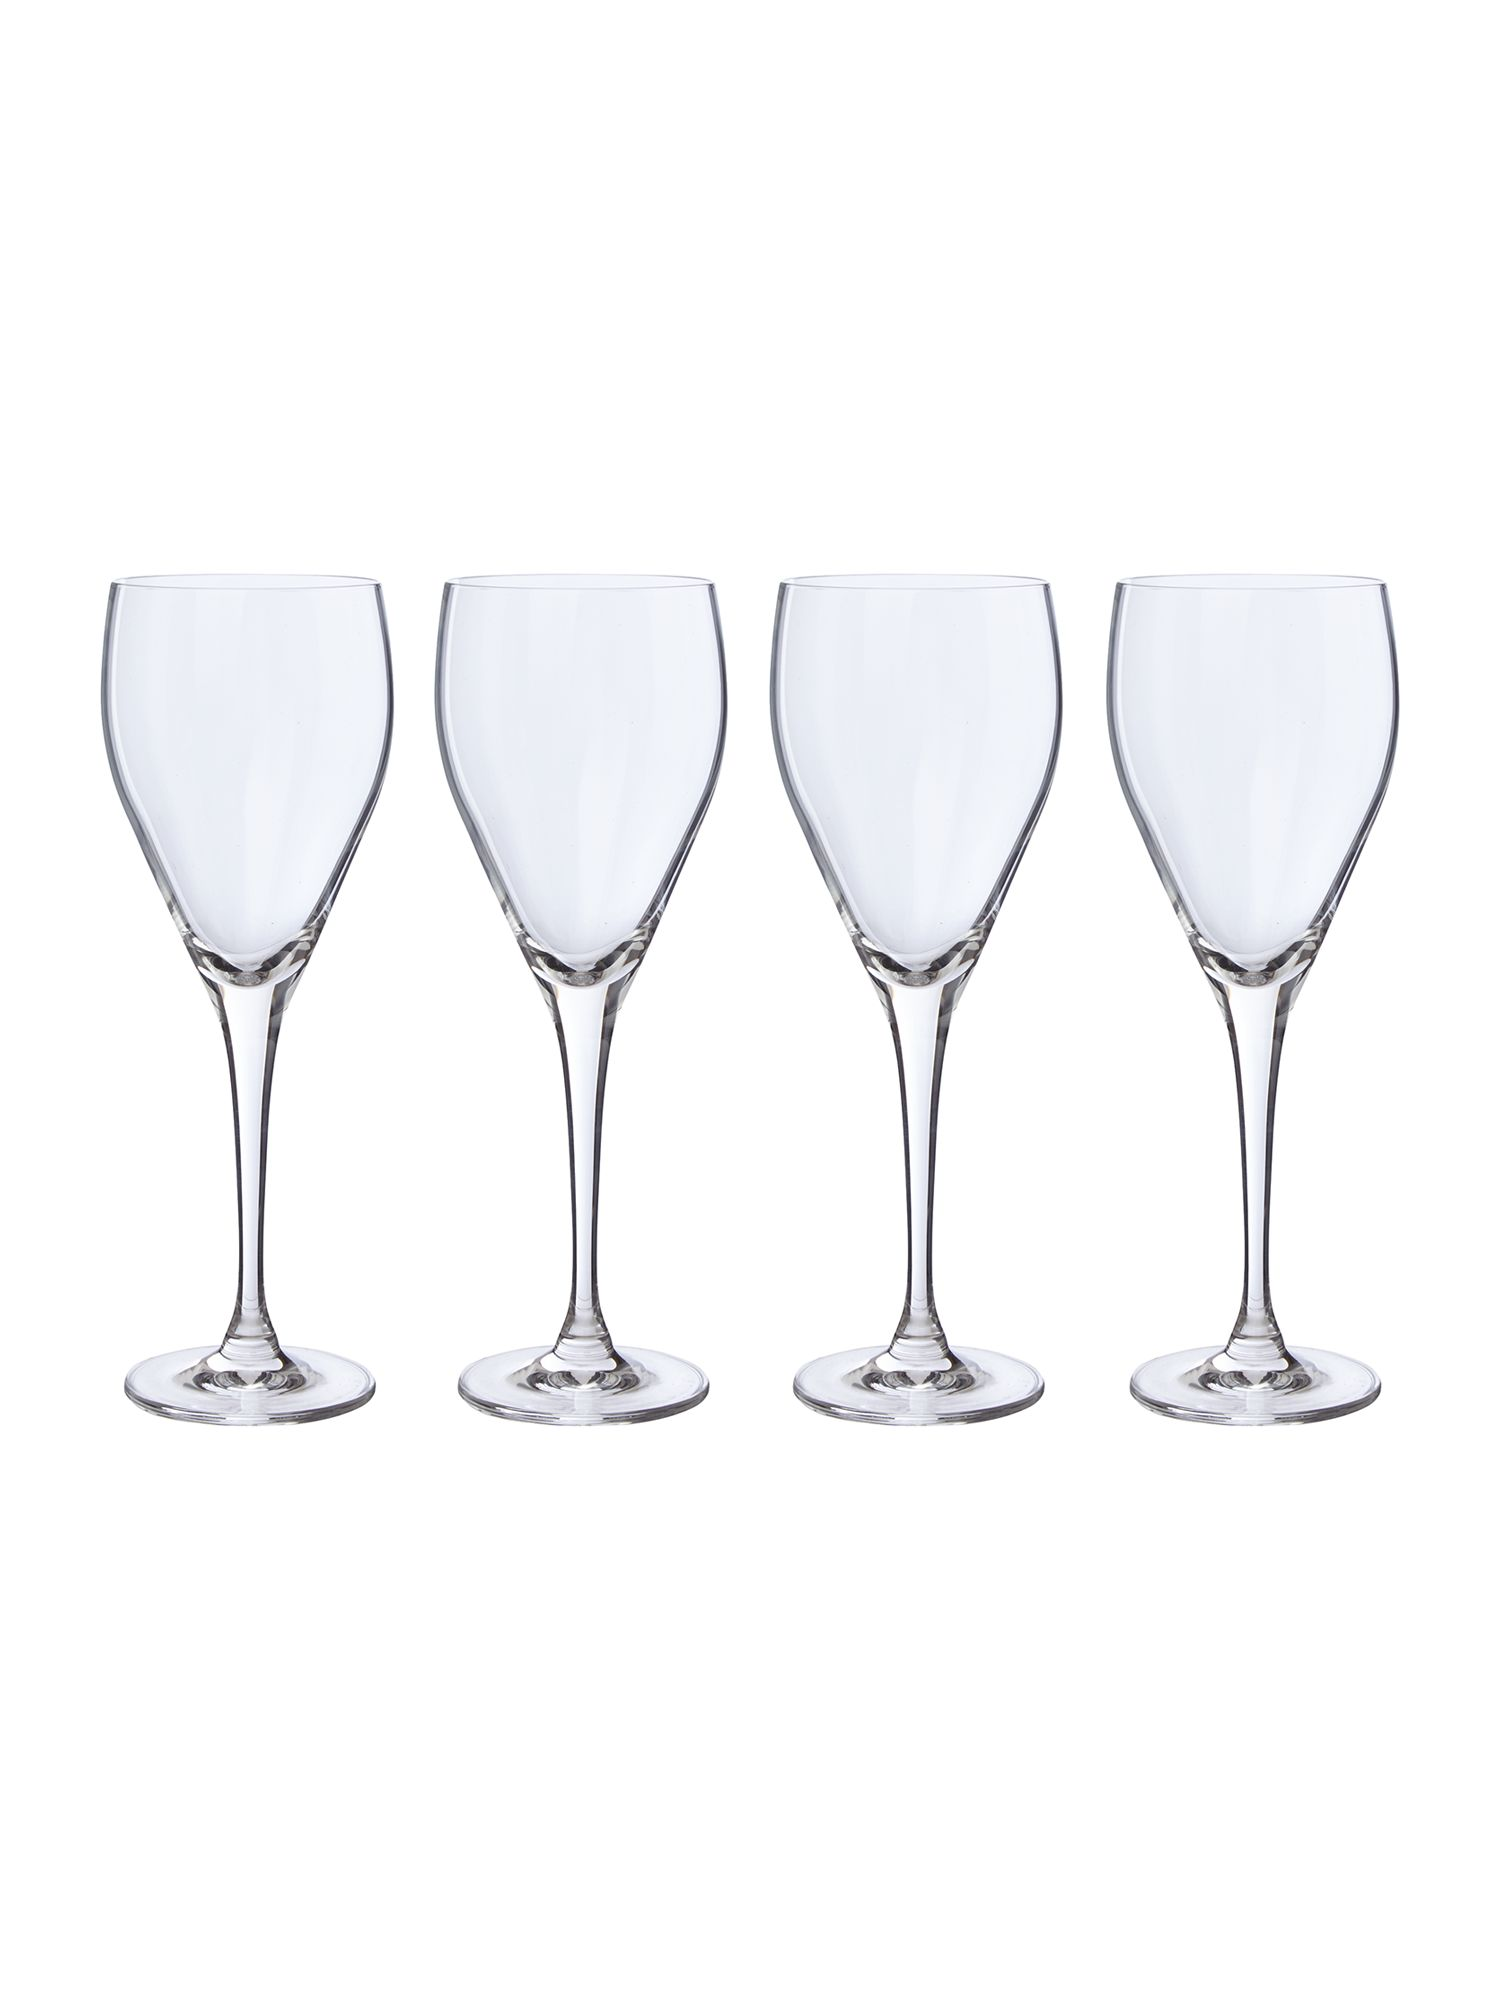 Nicole set of 4 red wine